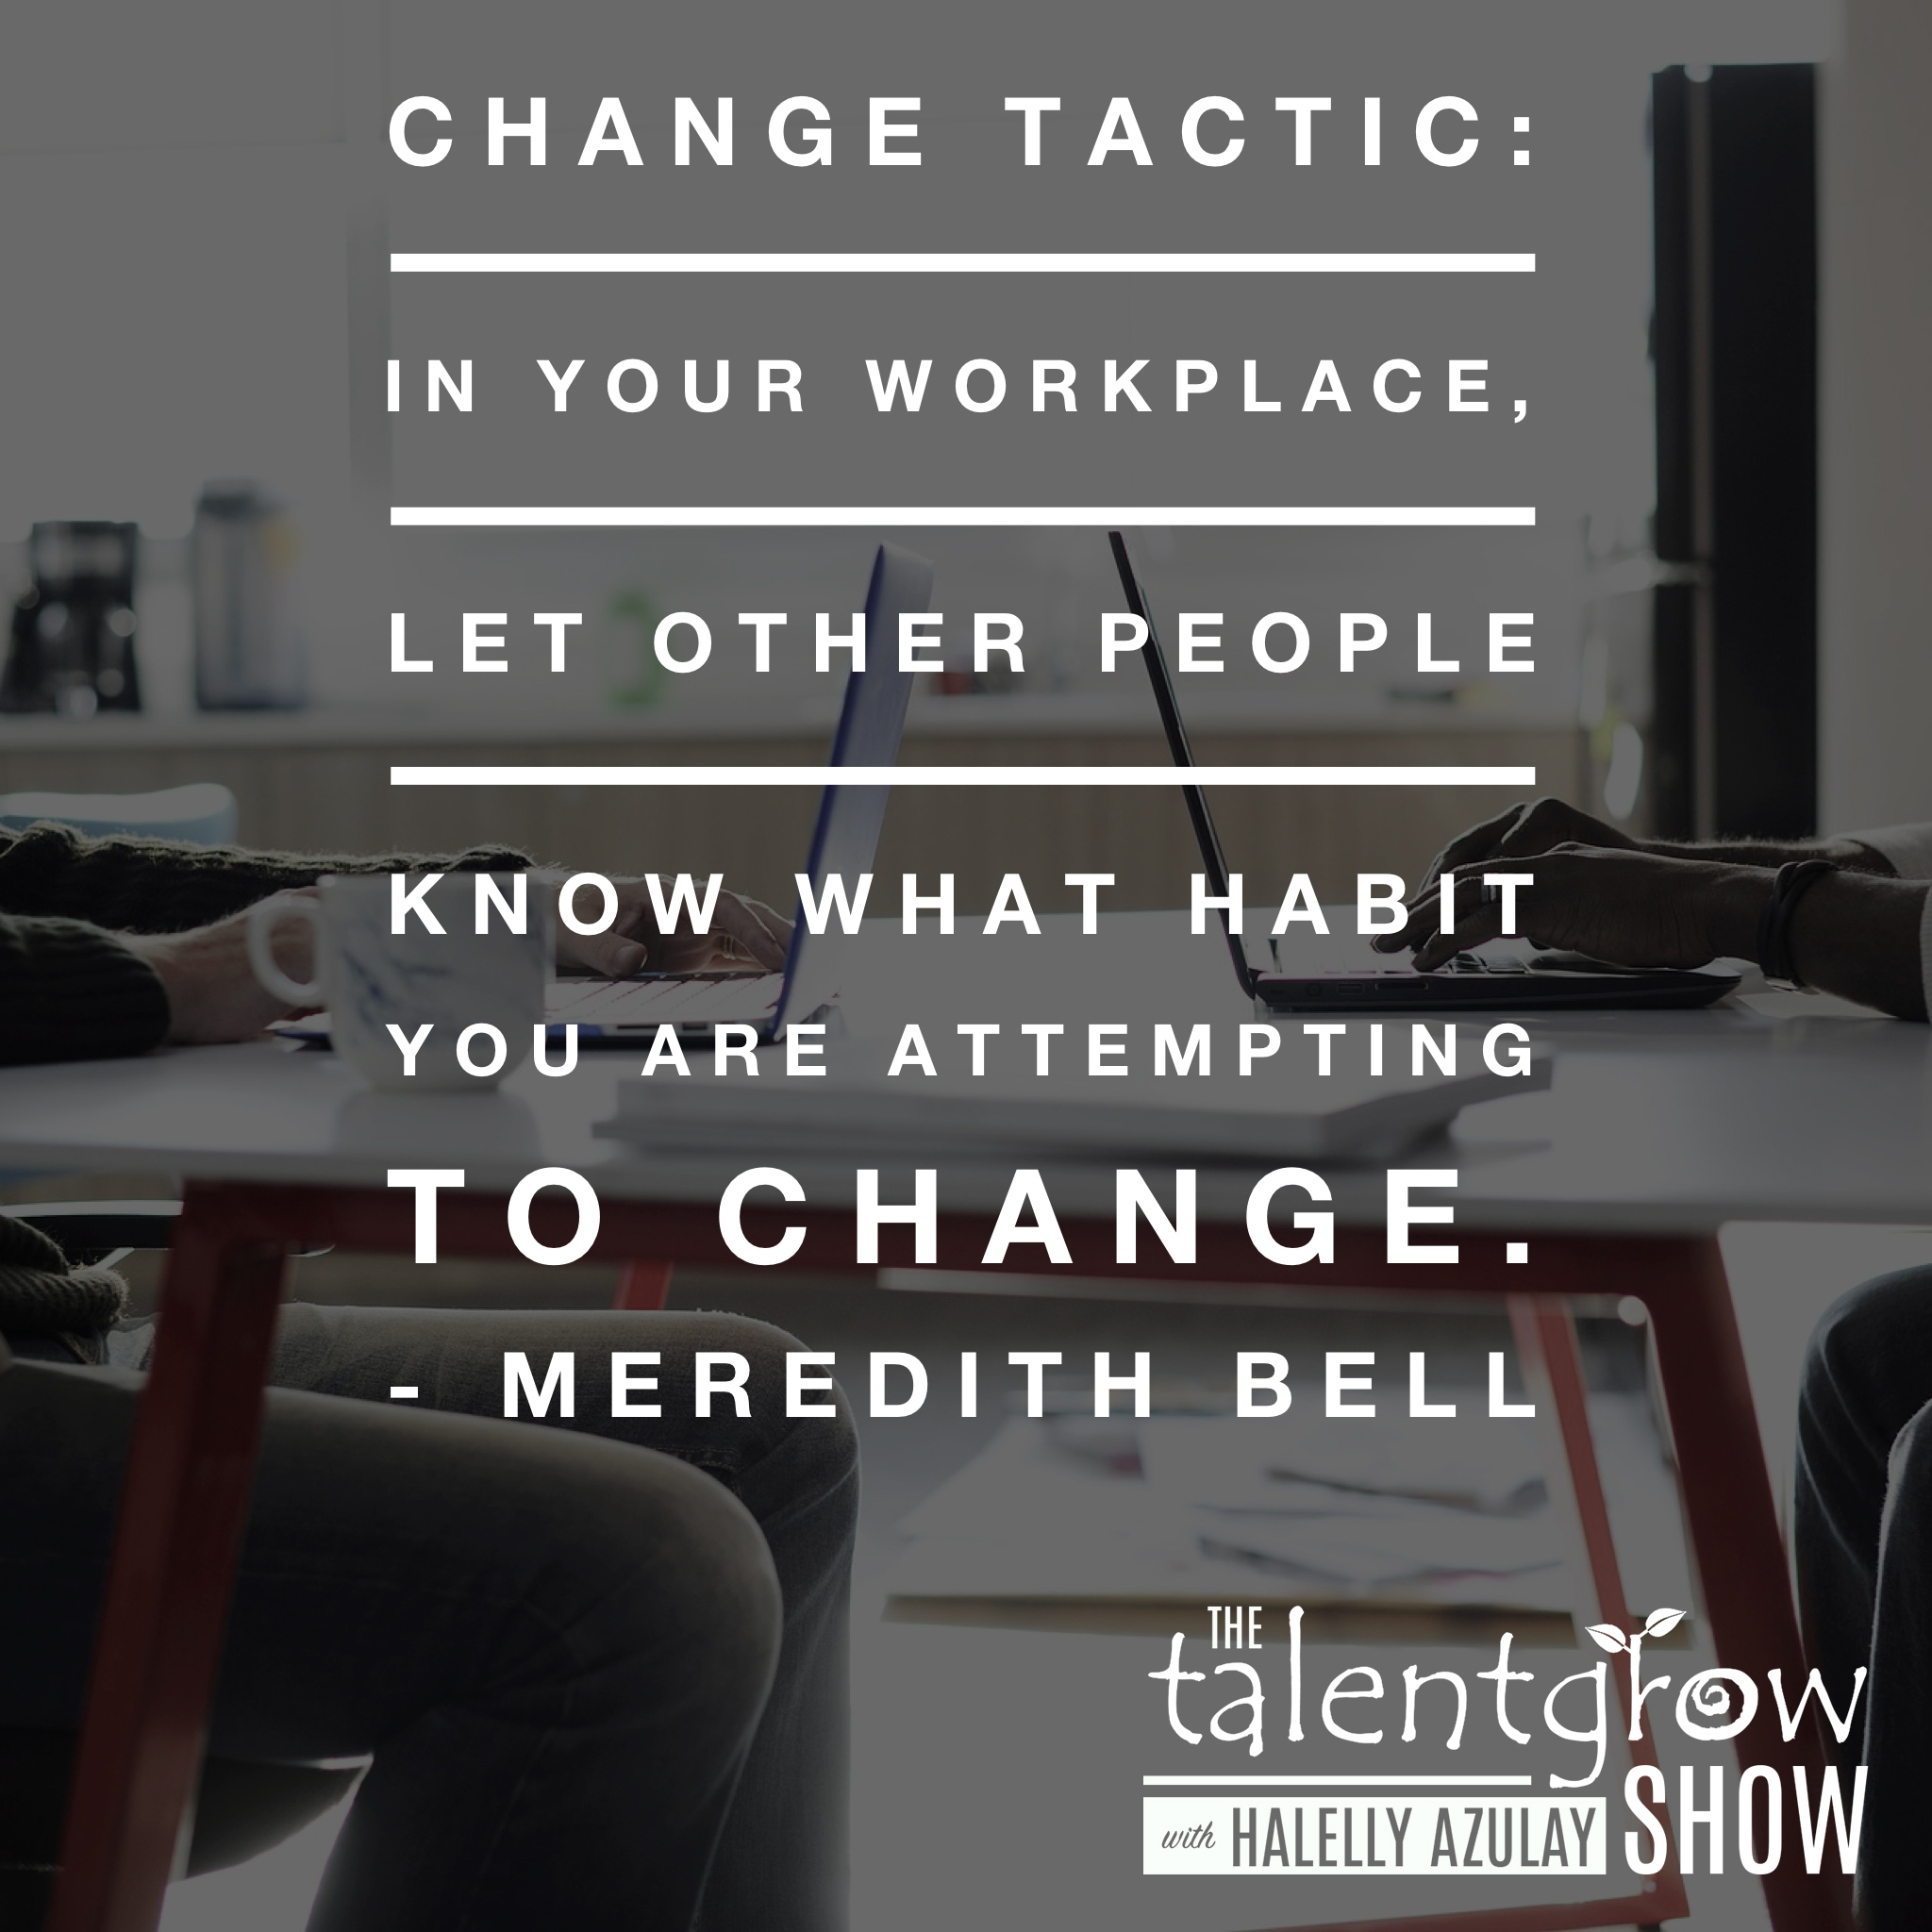 Change tactic by Meredith Bell on ep048 of the TalentGrow Show podcast with Halelly Azulay